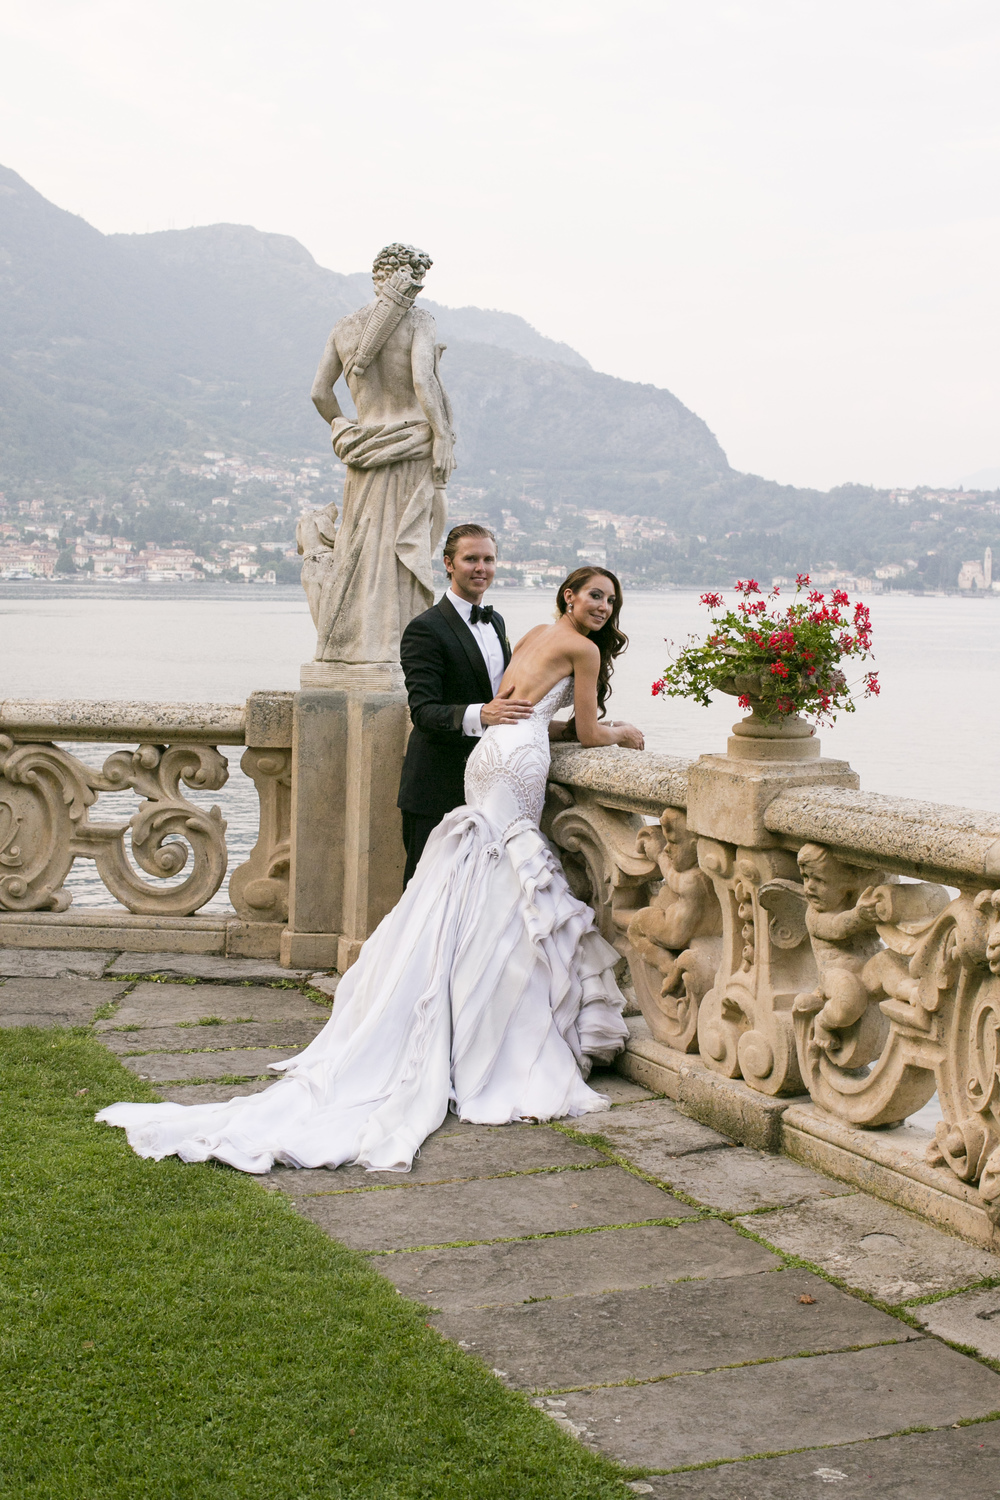 Ceci_New_York_Wedding_Lake_Como_Italy_Luxury_Style_Real_Bride_69.jpg